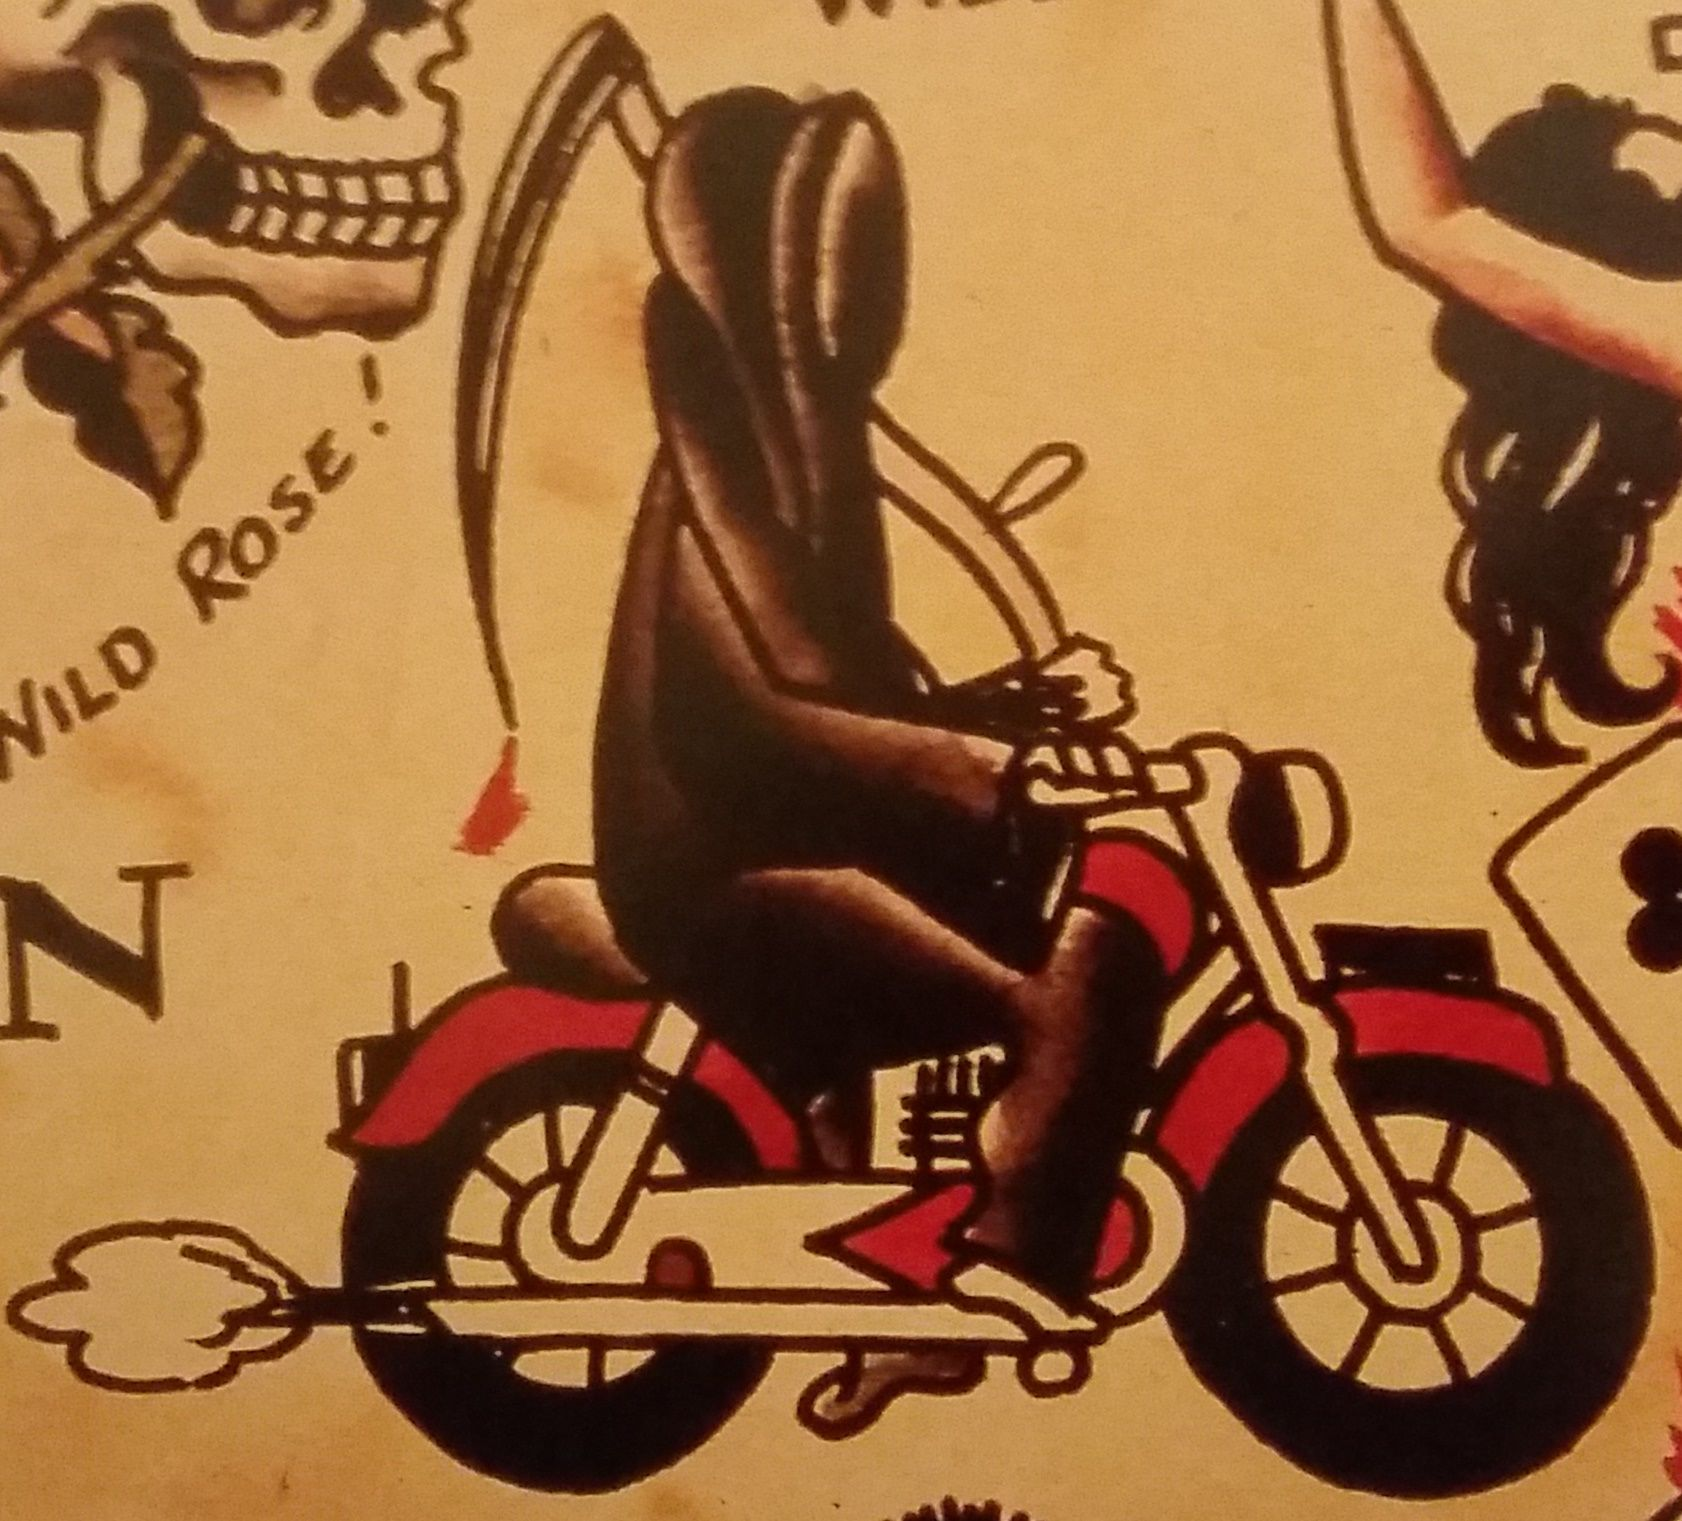 Motorcycle with biker tattoo - Traditional Old School Tattoo Sailor Jerry Grim Reaper Motorcycle